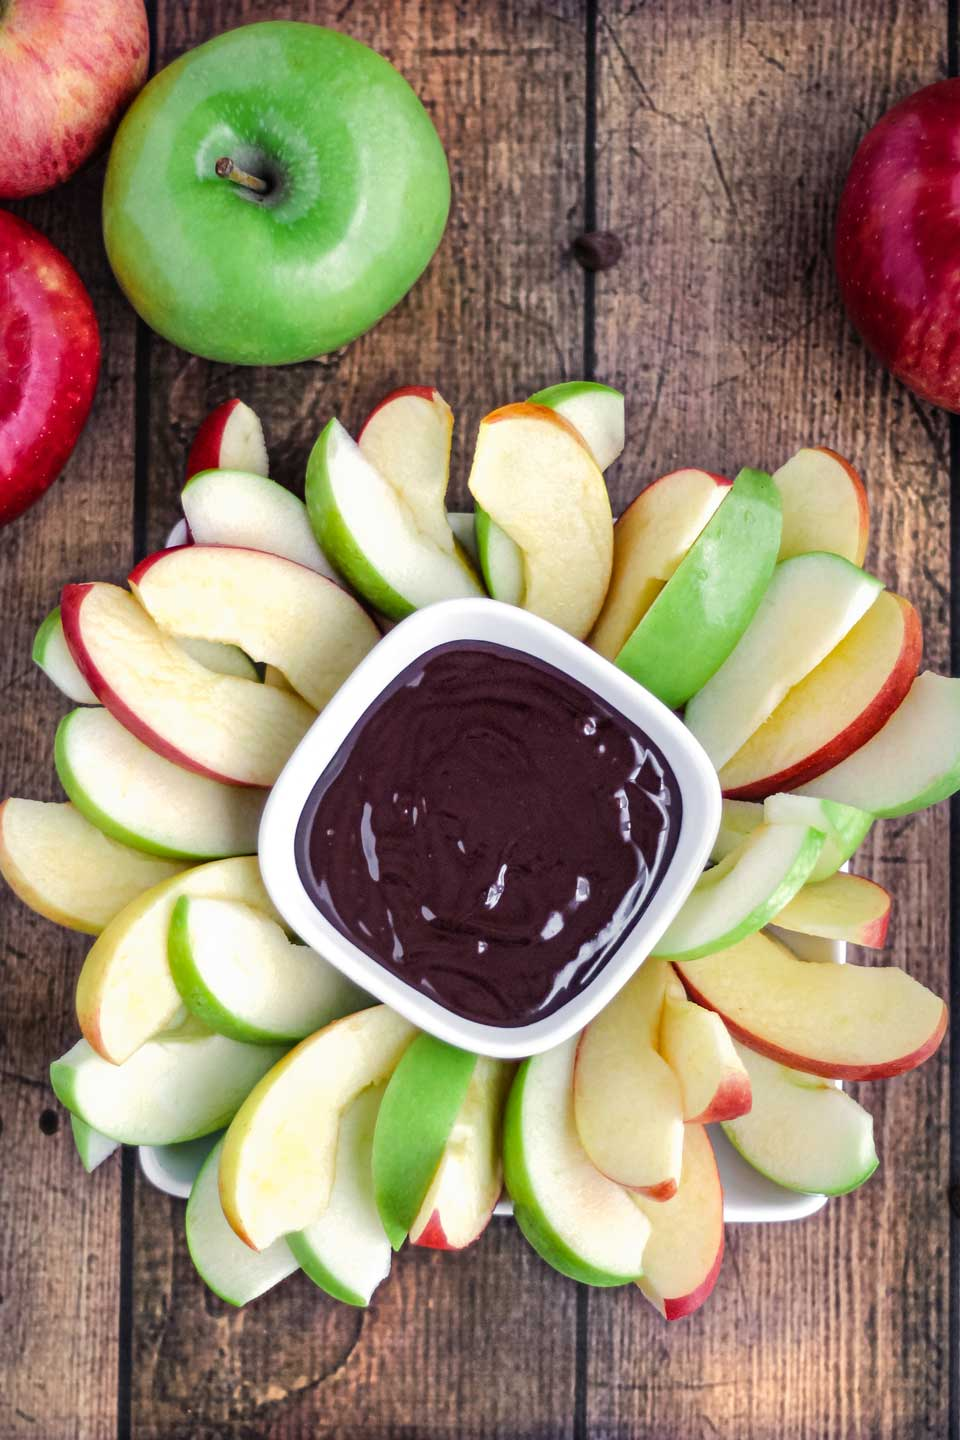 overhead of a platter of sliced red and green apples, with a square bowl of Chocolate Fruit Dip in the middle, and whole apples arranged alongside